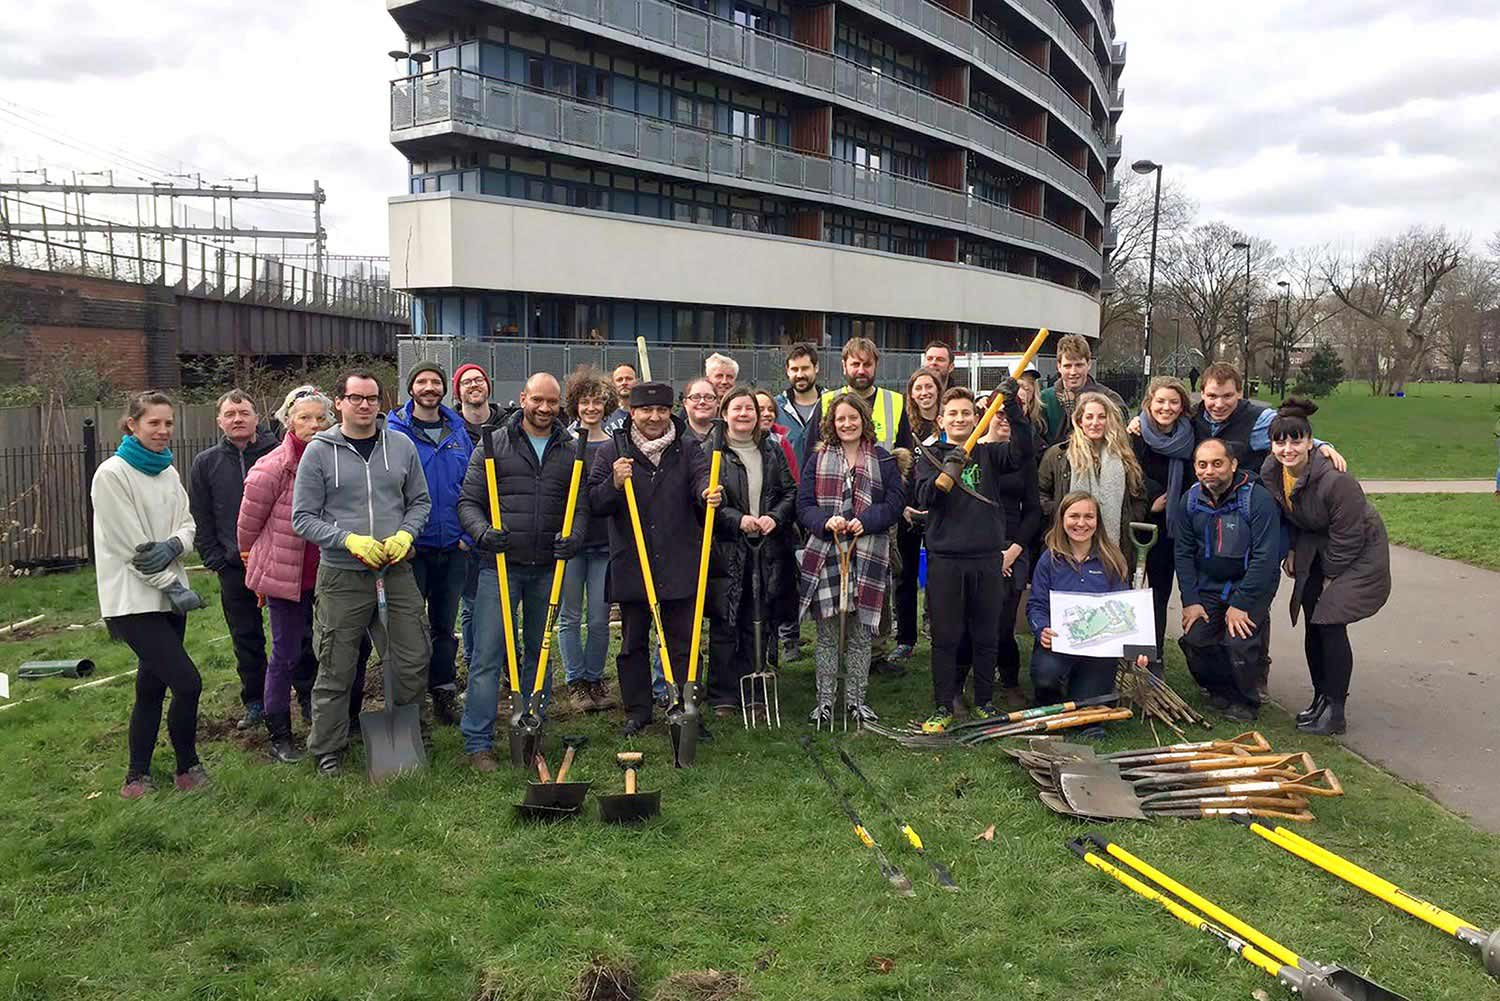 Group of volunteer gardeners at Meath Gardens in East London